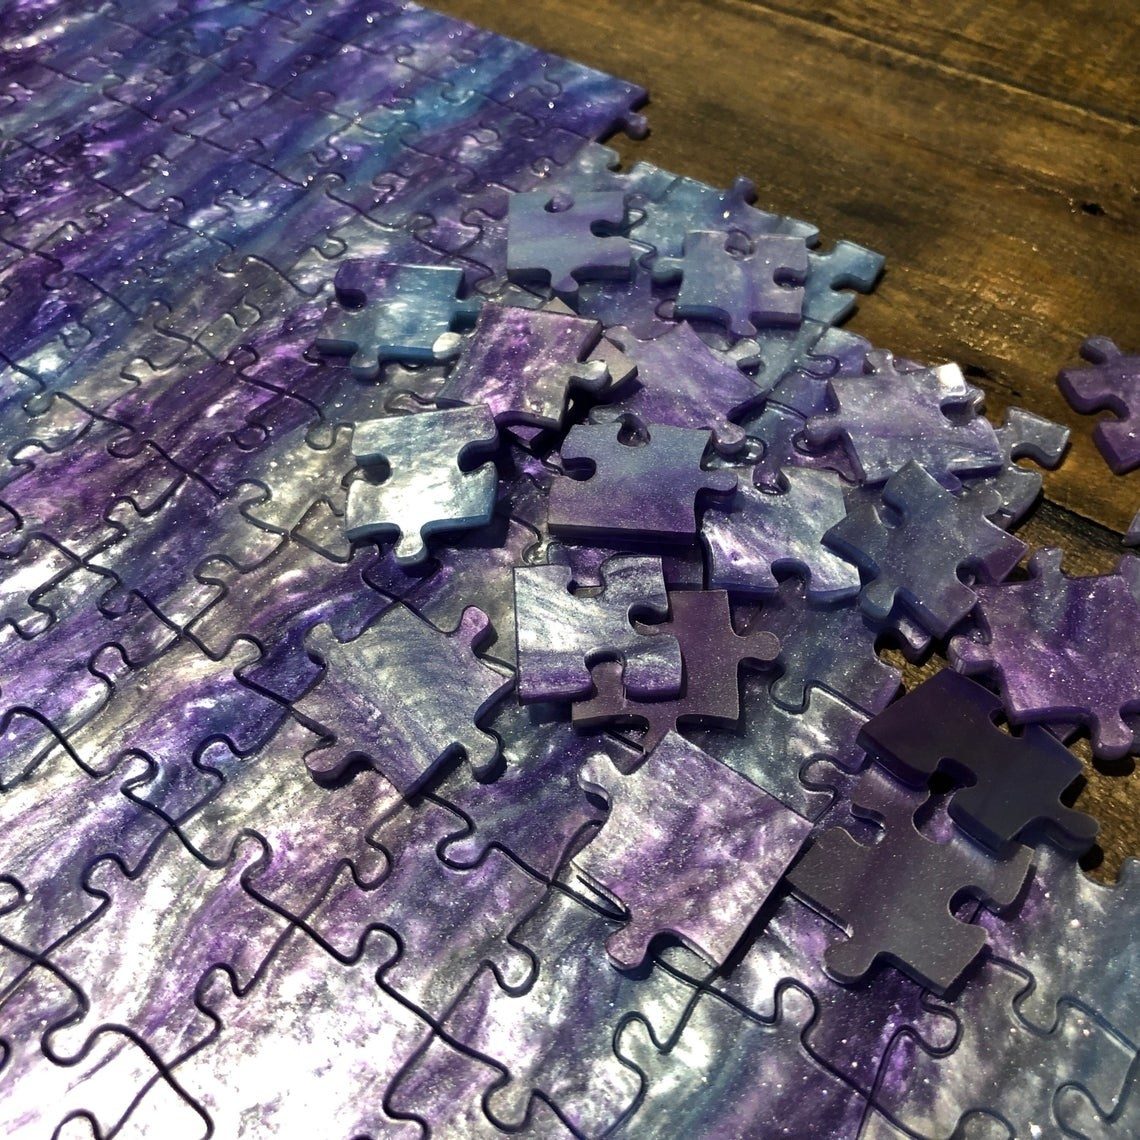 holographic purple and silver jig saw puzzle with some connected and some loose pieces. No decipherable patten on puzzle, so it would be difficult